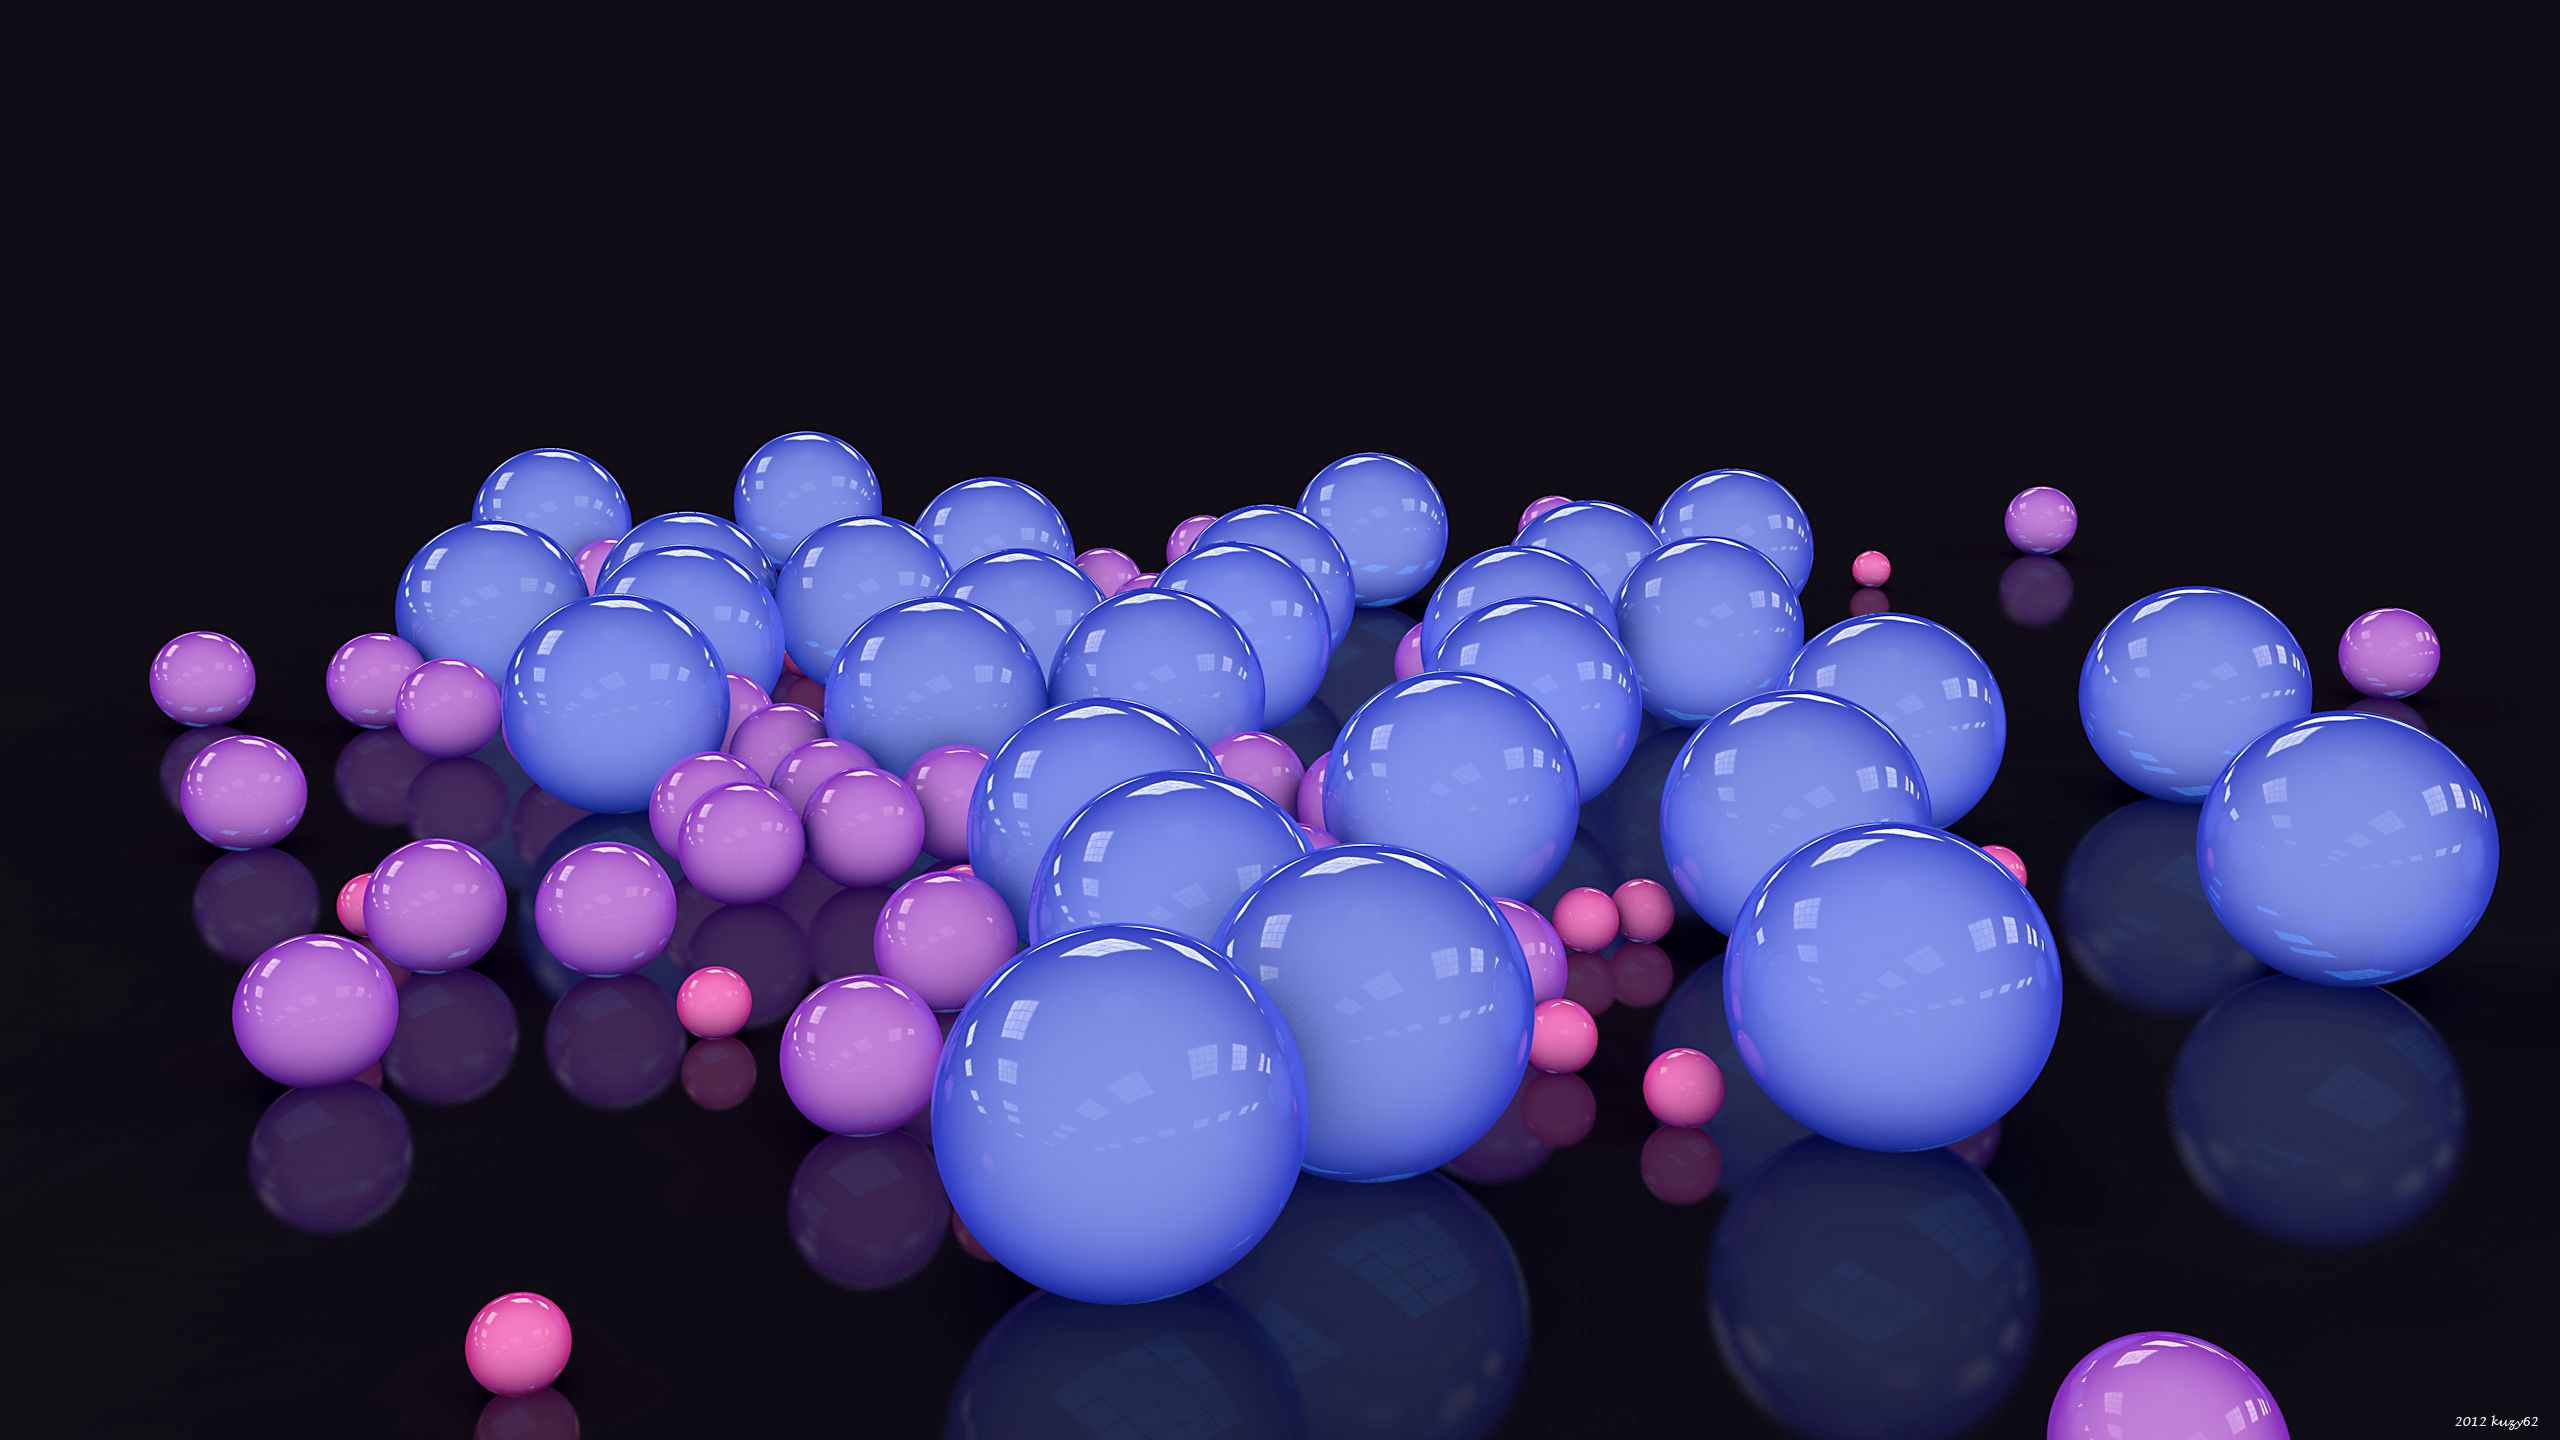 148172 Screensavers and Wallpapers Background for phone. Download 3D, Balls, Glass, Bright, Background pictures for free